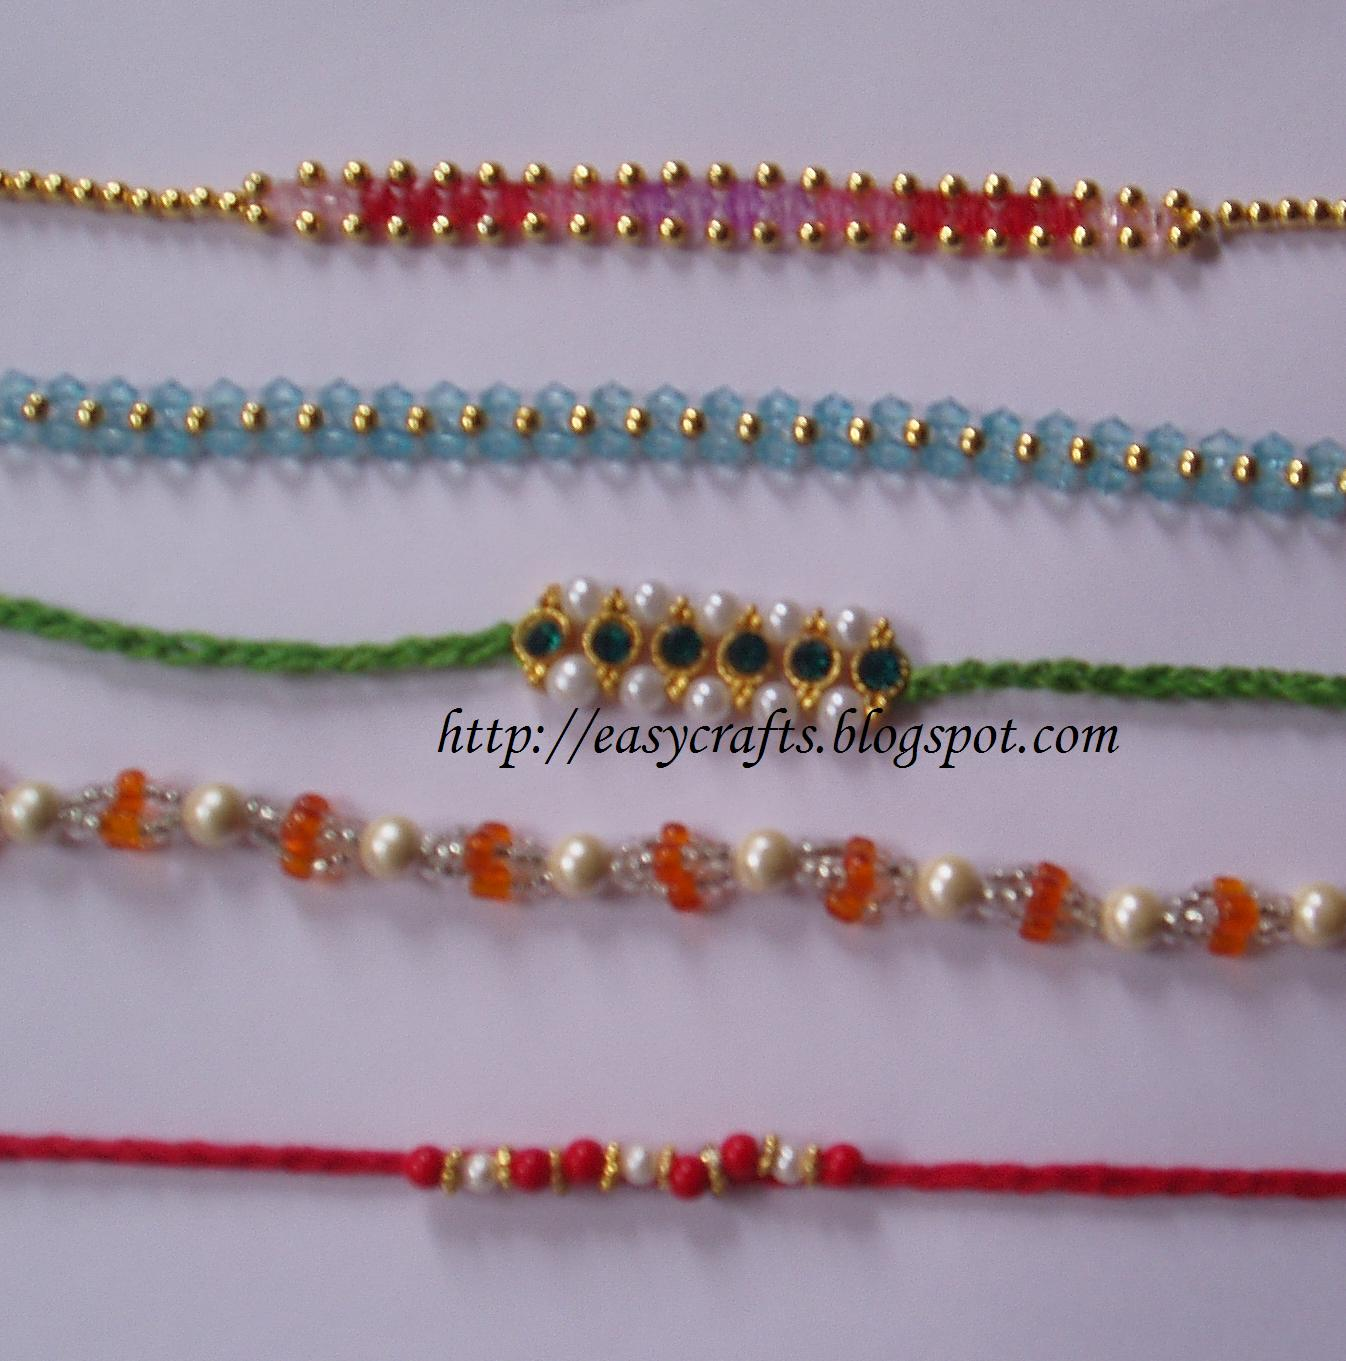 Easy crafts explore your creativity best out of waste ideas - Easy Crafts Explore Your Creativity Handmade Rakhis